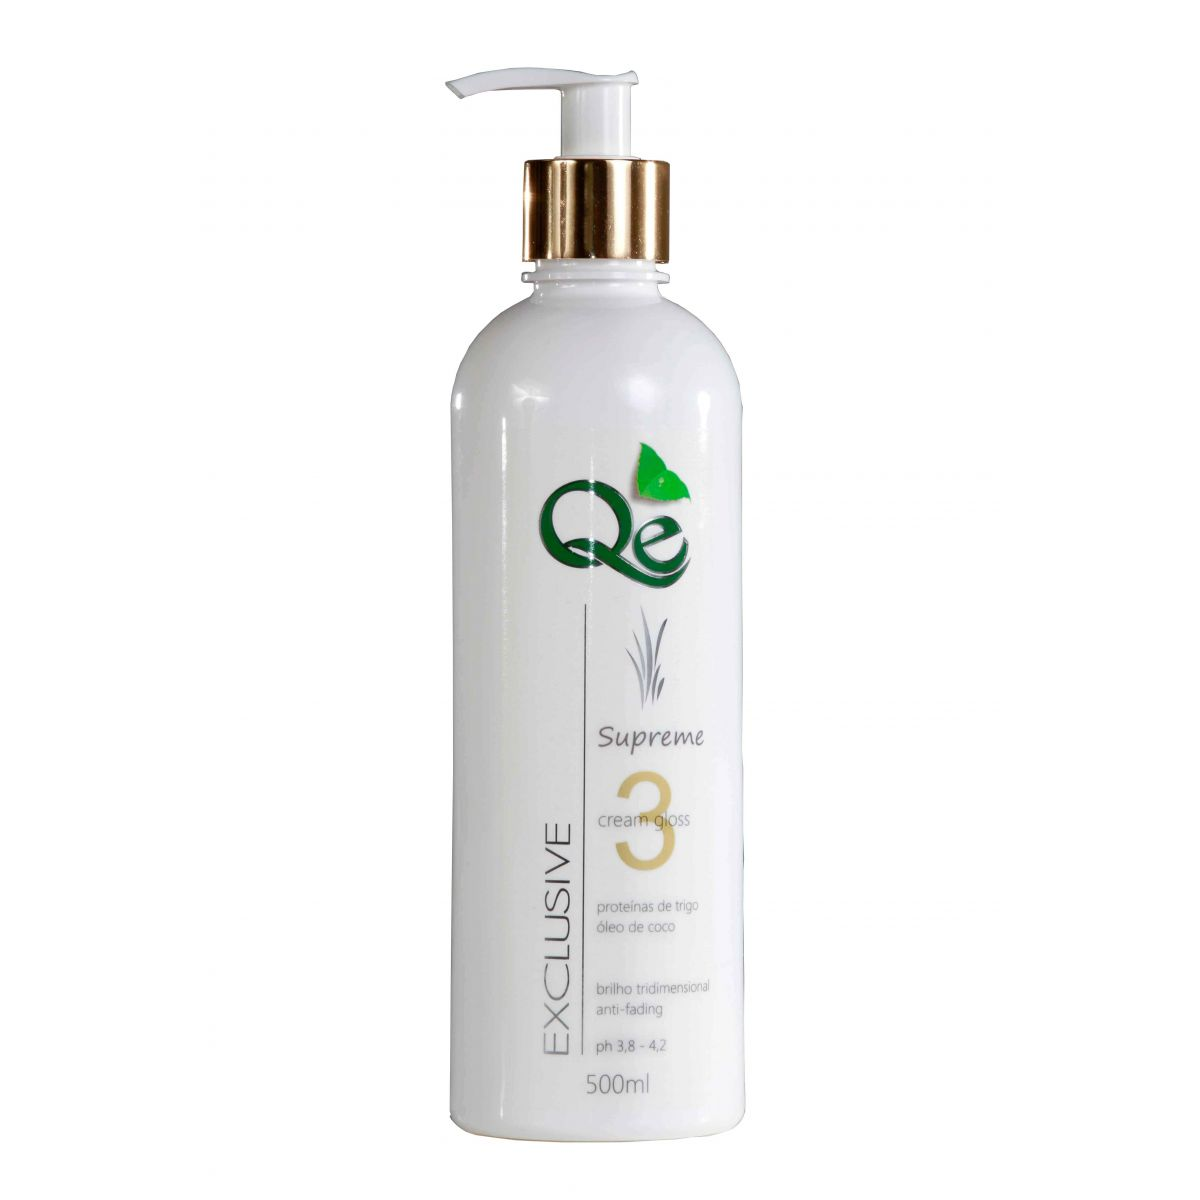 CREAM GLOSS SUPREME QE 500ML  - LOJA QUINTA ESSENCIA